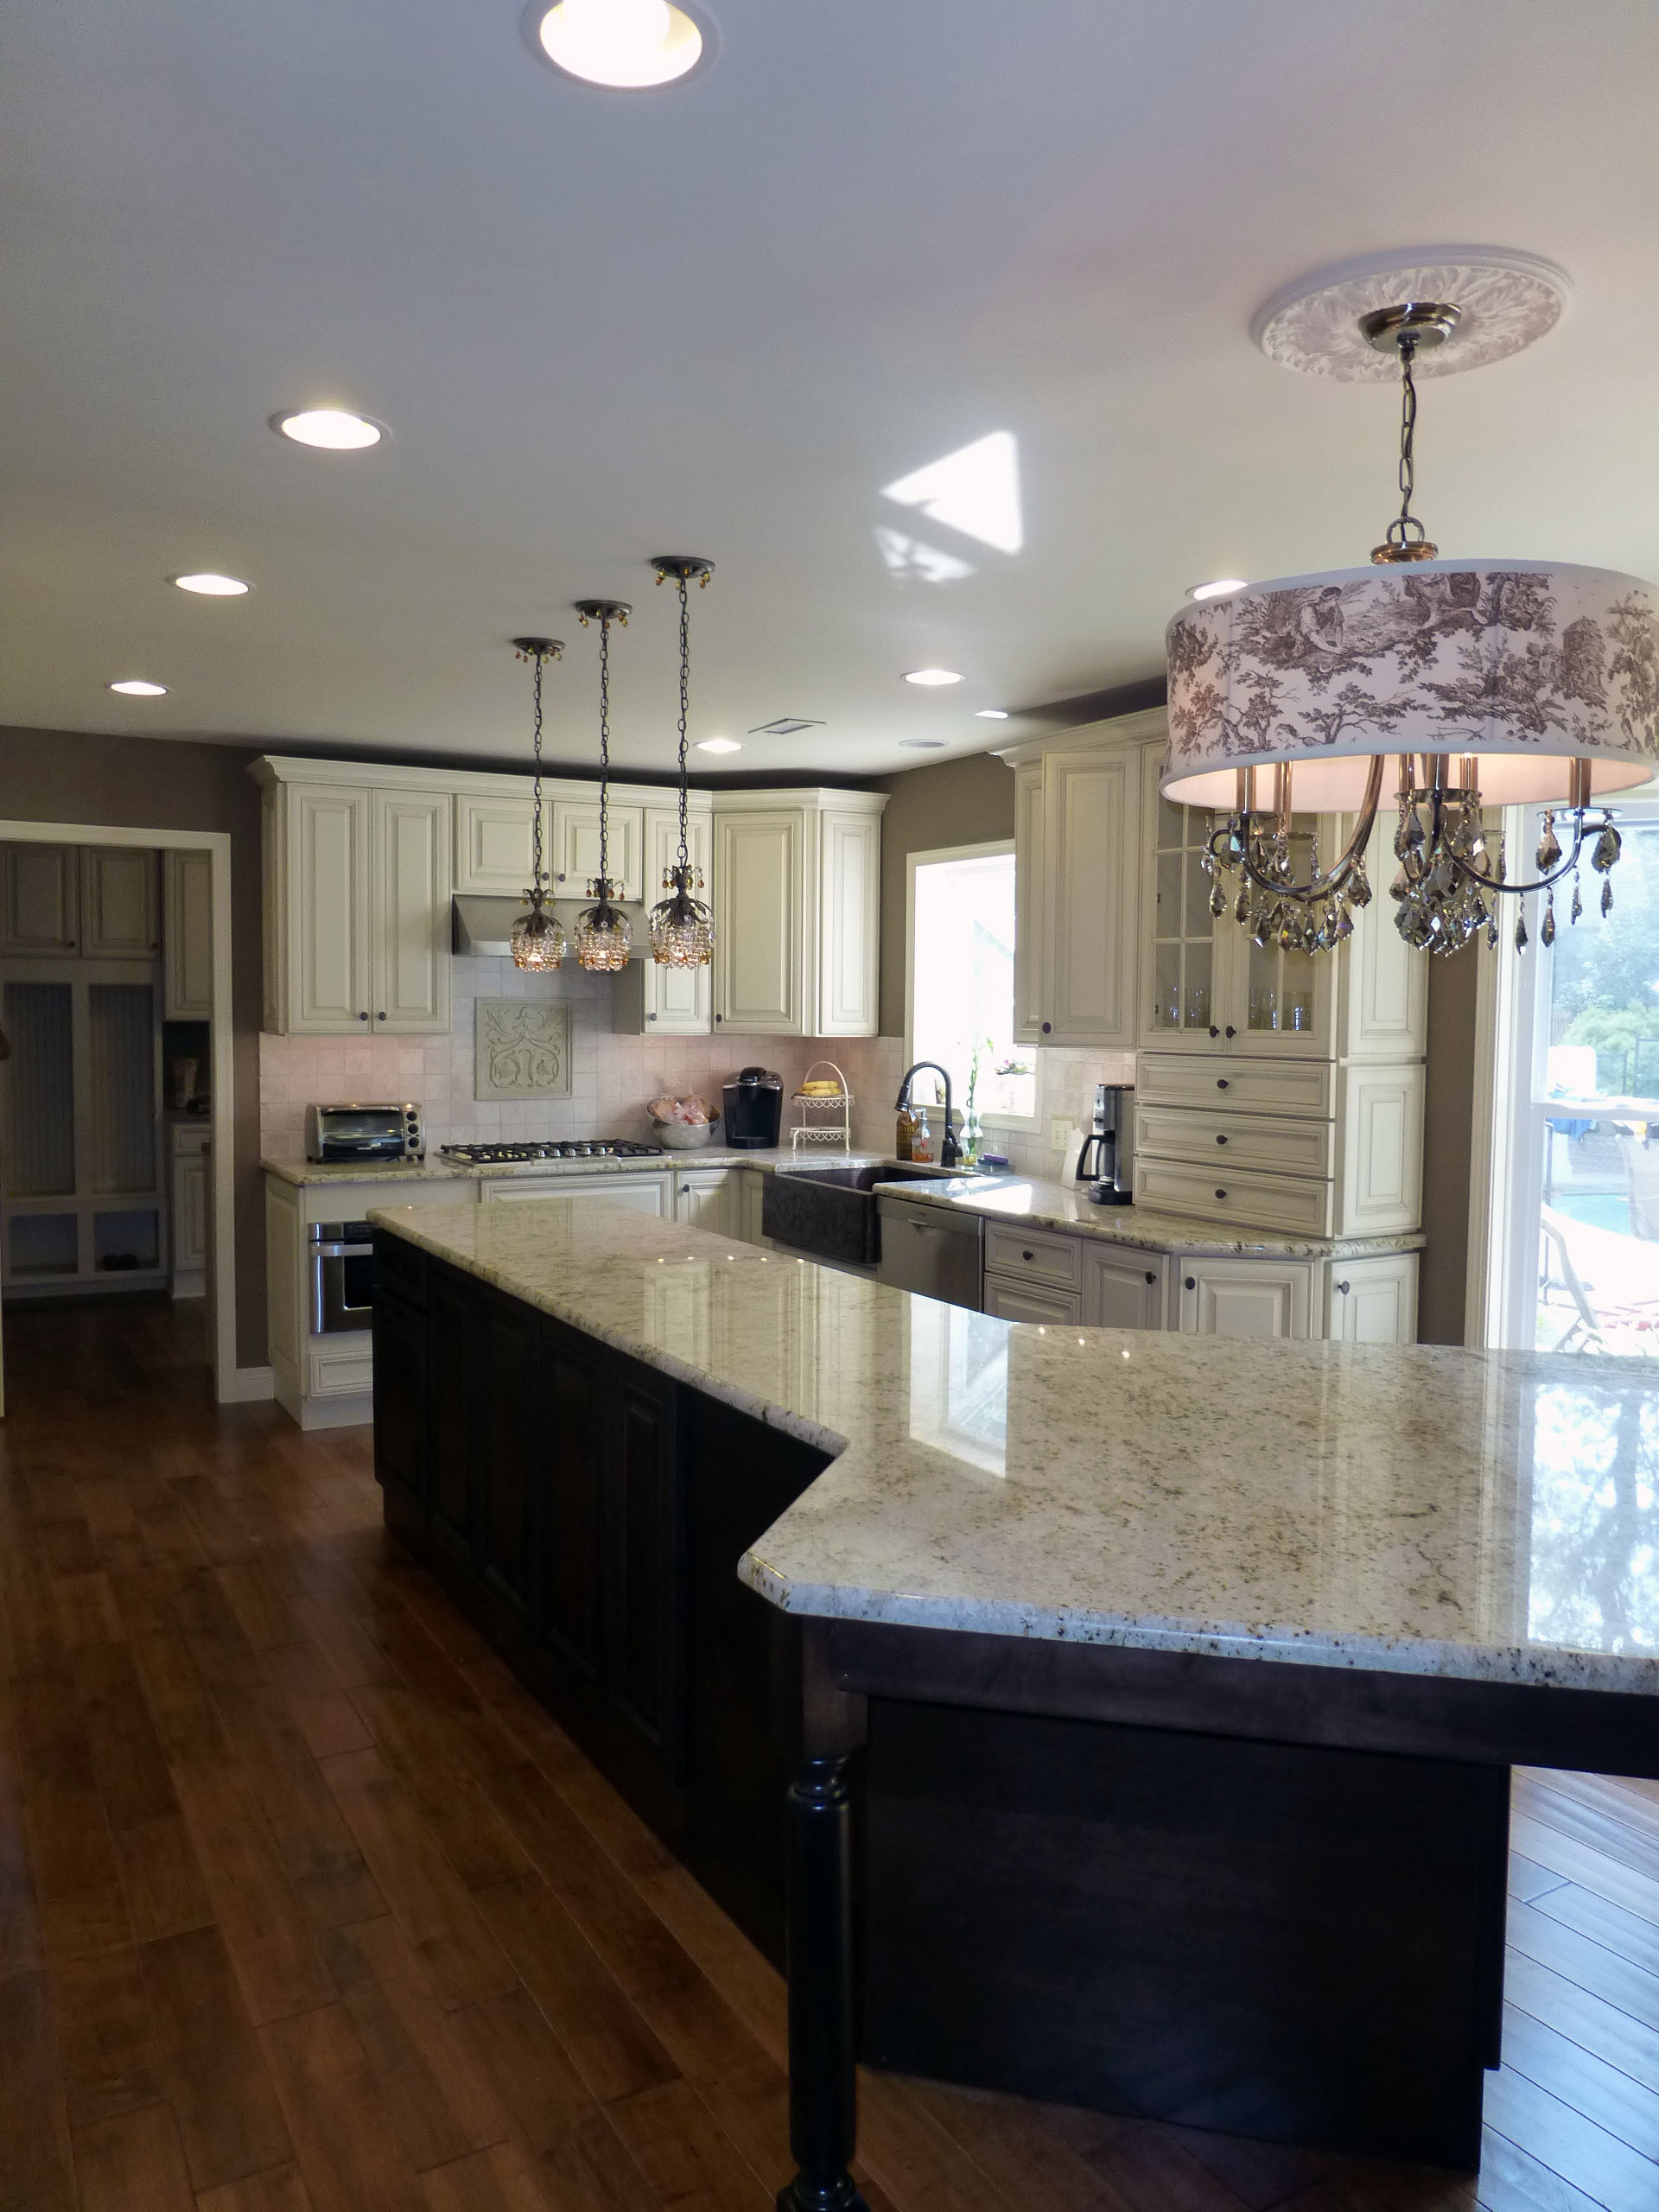 Best Single Family Kitchen, Awarded by the Home Builders Association of Bucks and Montgomery Counties and Chester & Delaware Counties (HBA)